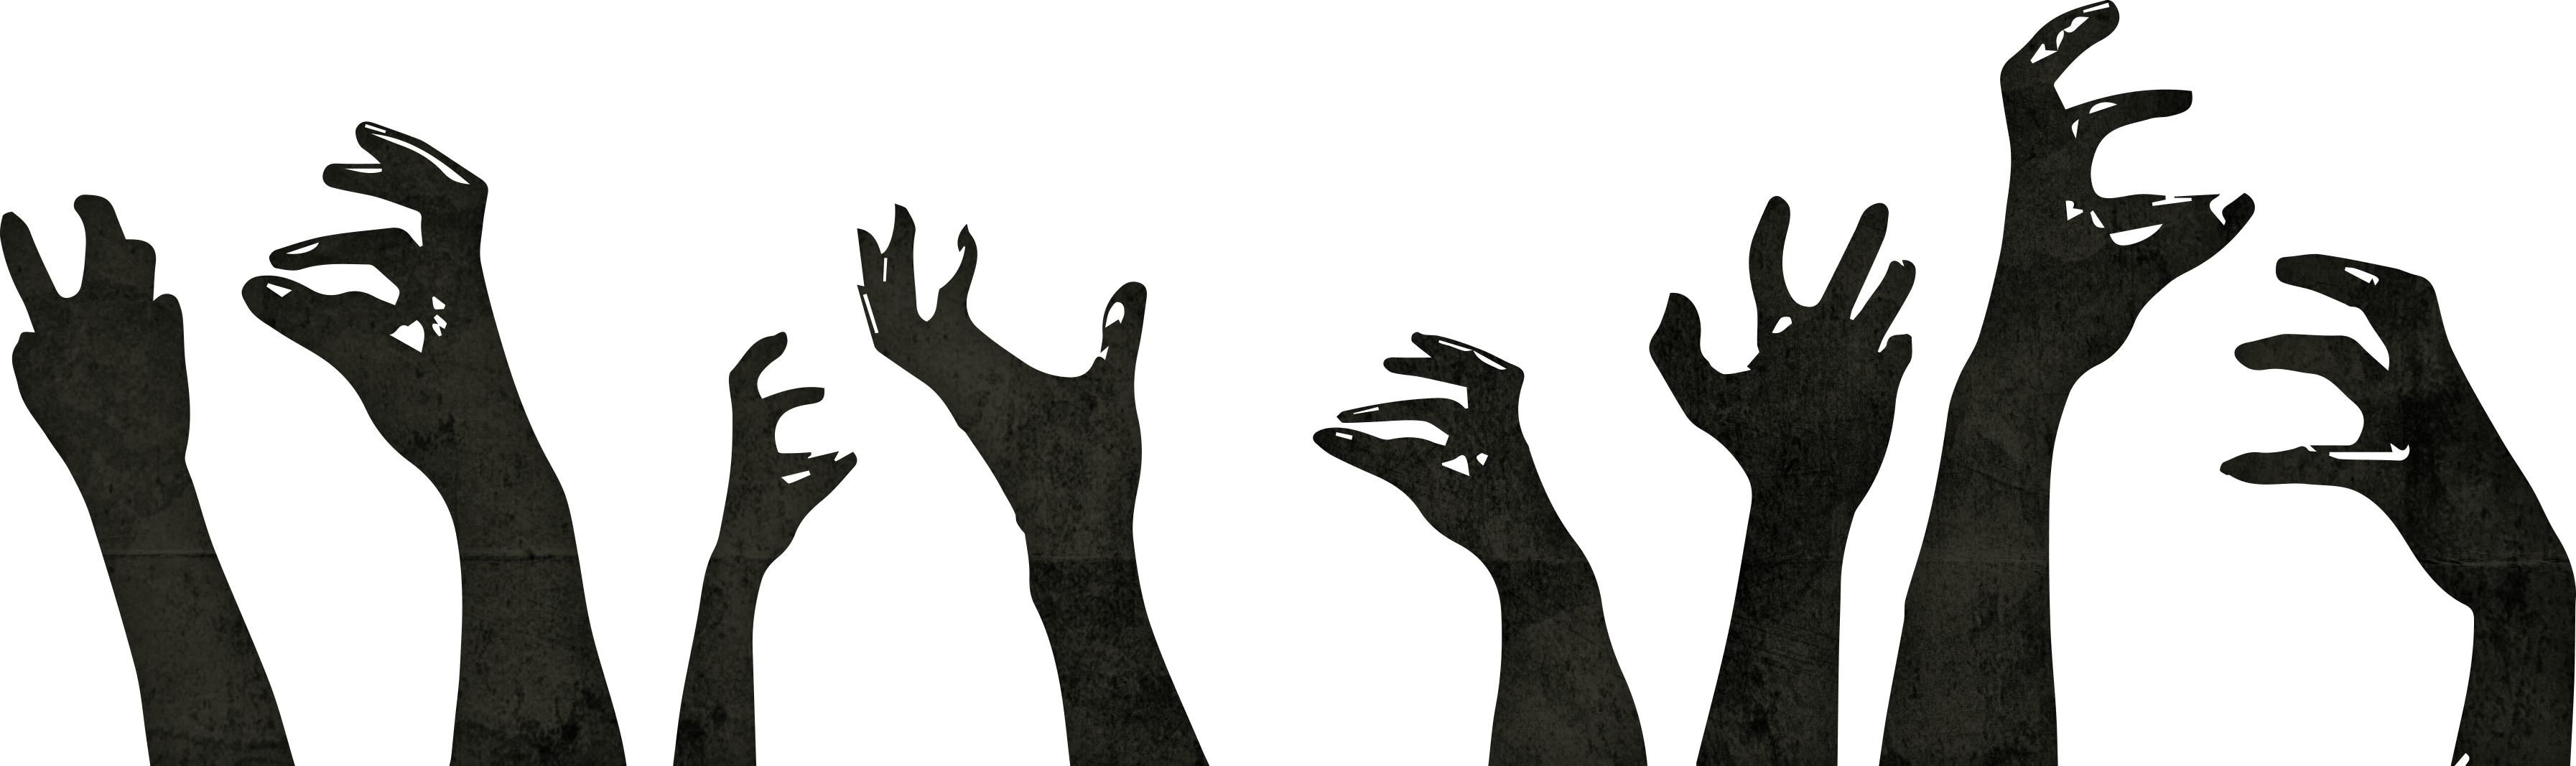 I Think The World Is Ready For A New Zombie Movie Zombie Hand Vector Png Transparent Cartoon Jing Fm Cartoon severed zombie hand holding a blank card. zombie hand vector png transparent